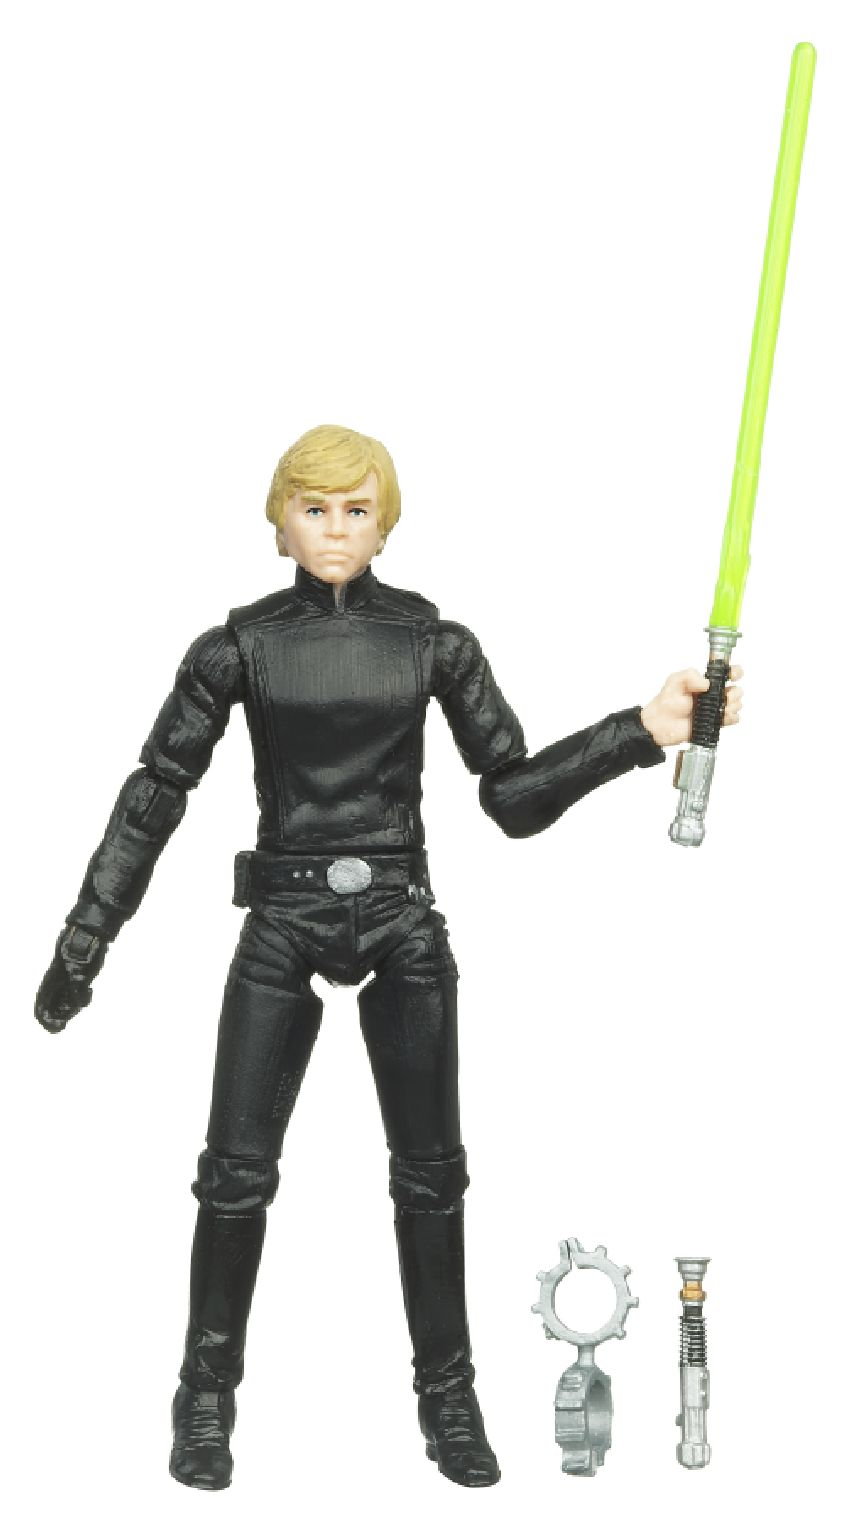 Star Wars Toys Hasbro : Hasbro star wars vintage and legacy figures images